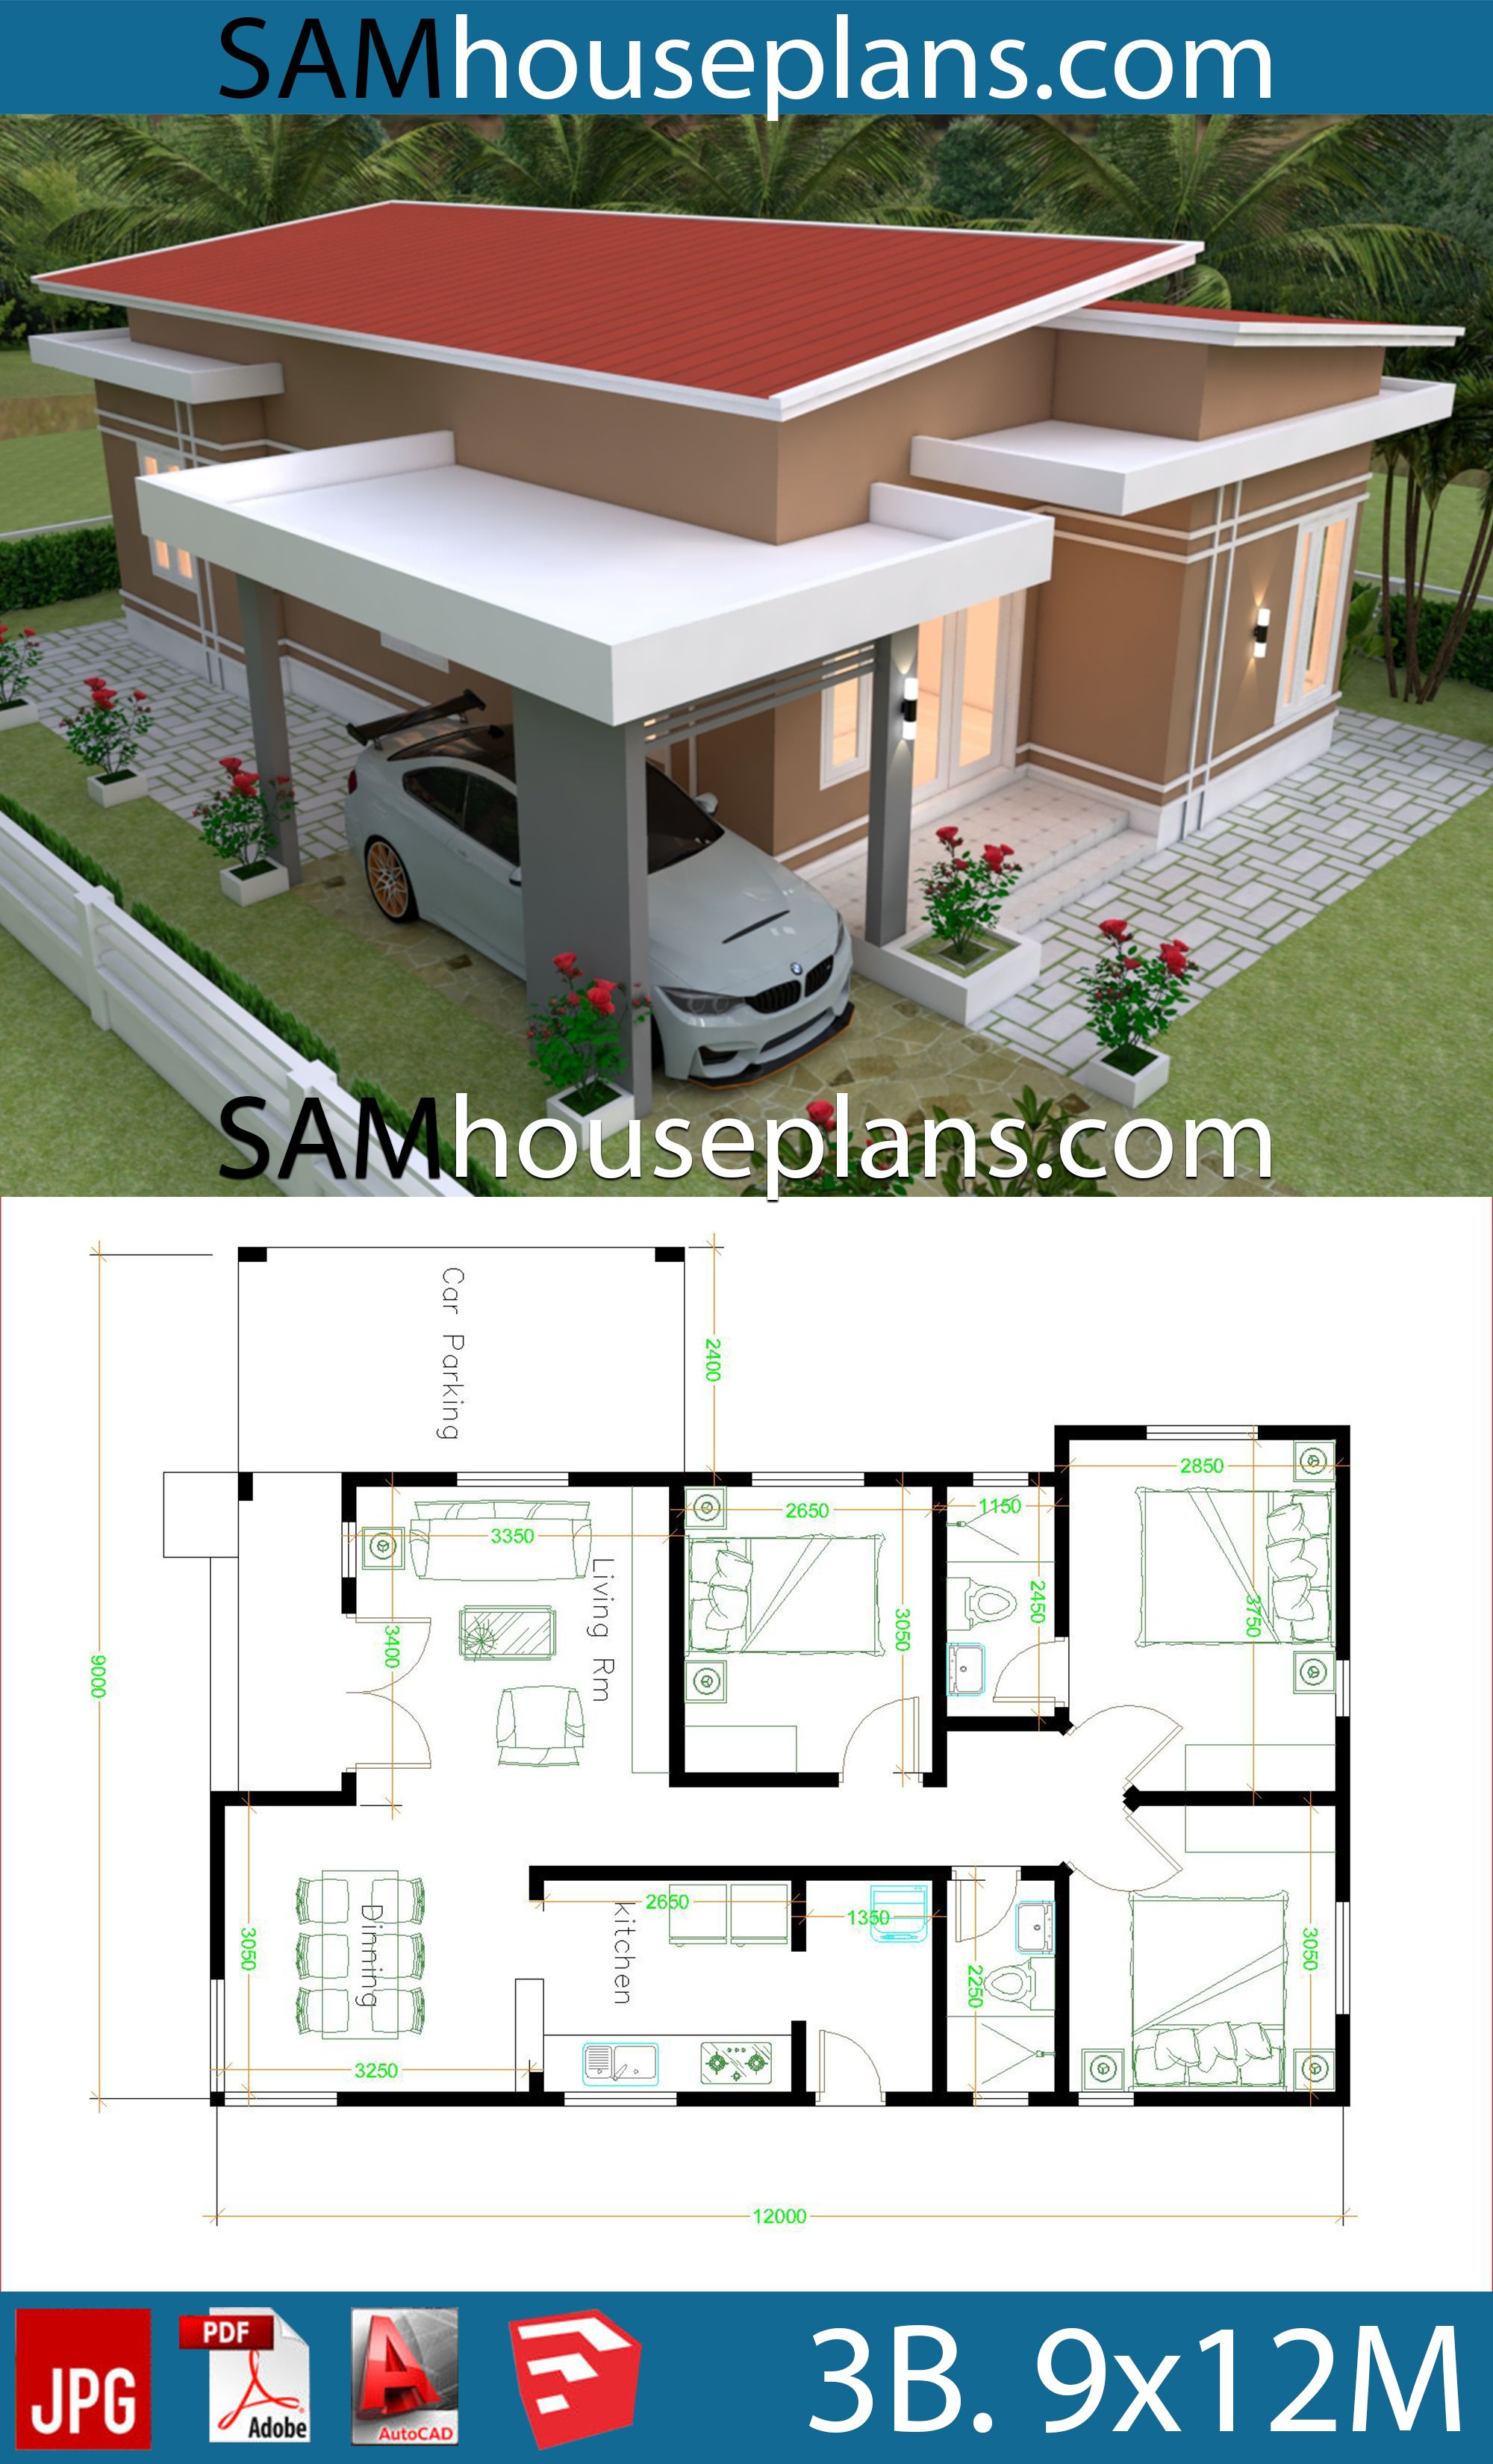 House Plans 9x12 With 3 Bedrooms Roof Tiles House Plans Free Downloads Architectural House Plans Small House Design Plans Simple House Design